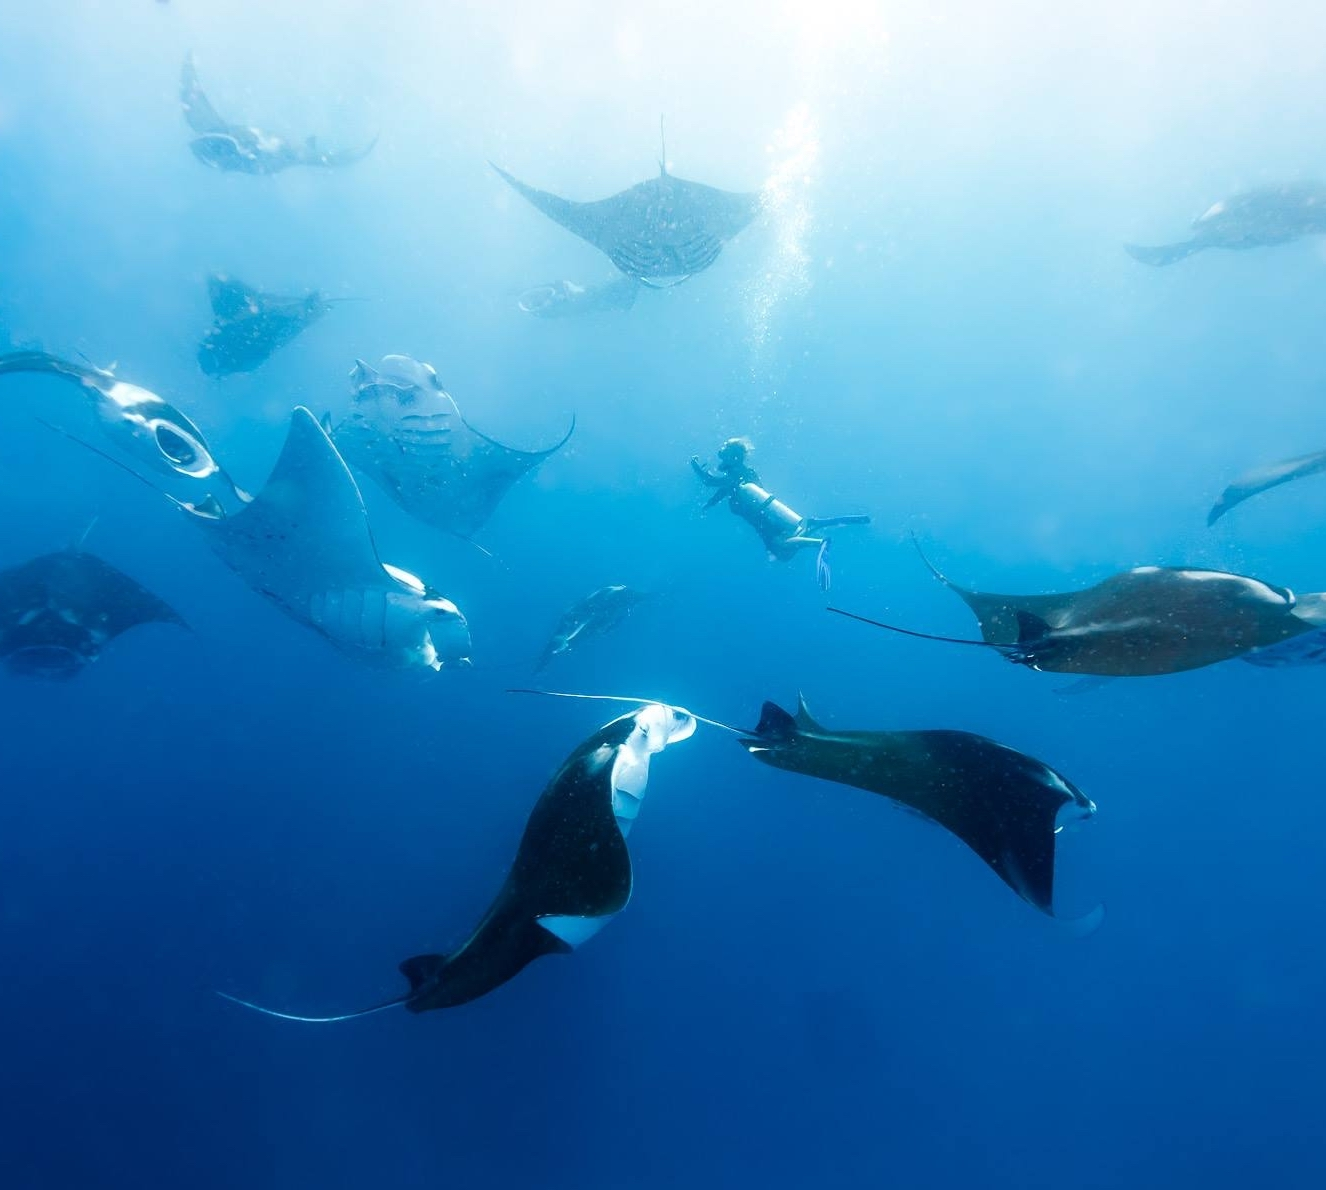 Manta rays surrounding dive team member, Matt Boyle